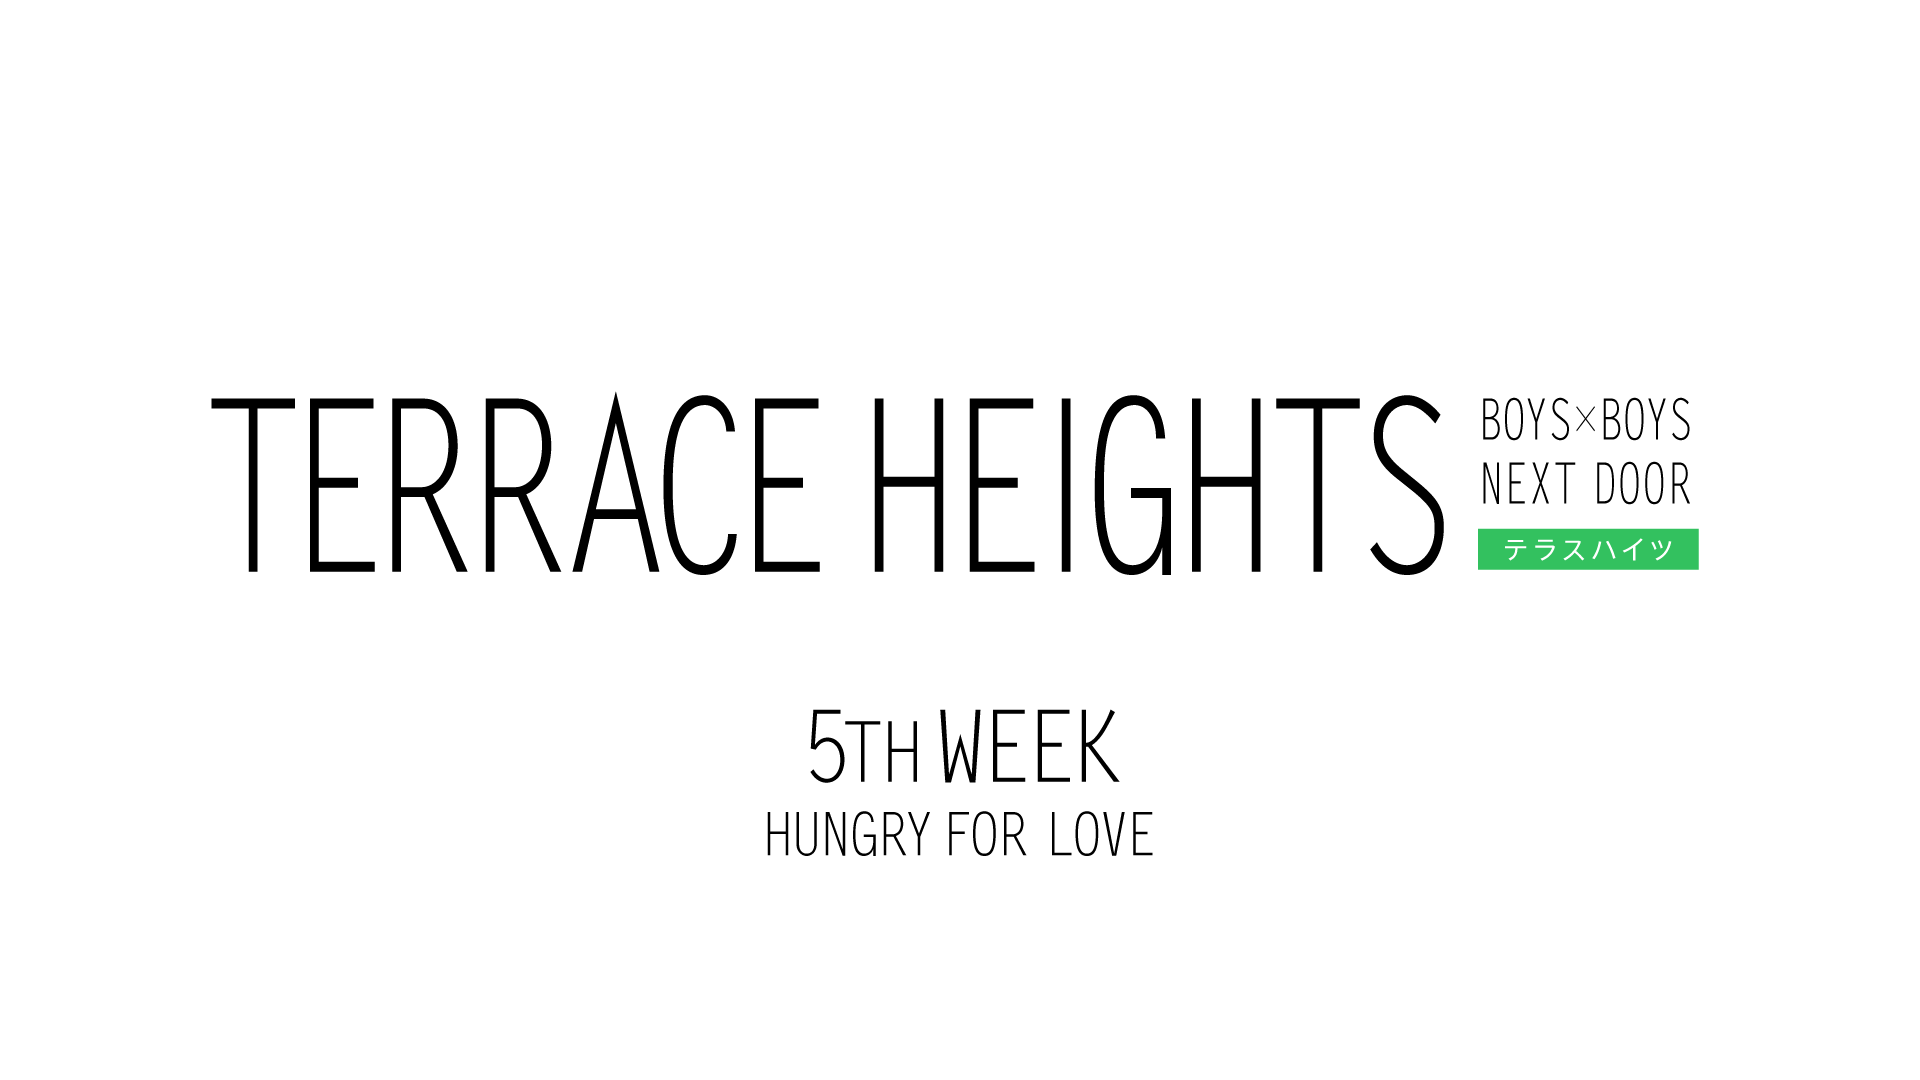 TERRACE HEIGHTS 5th WEEK